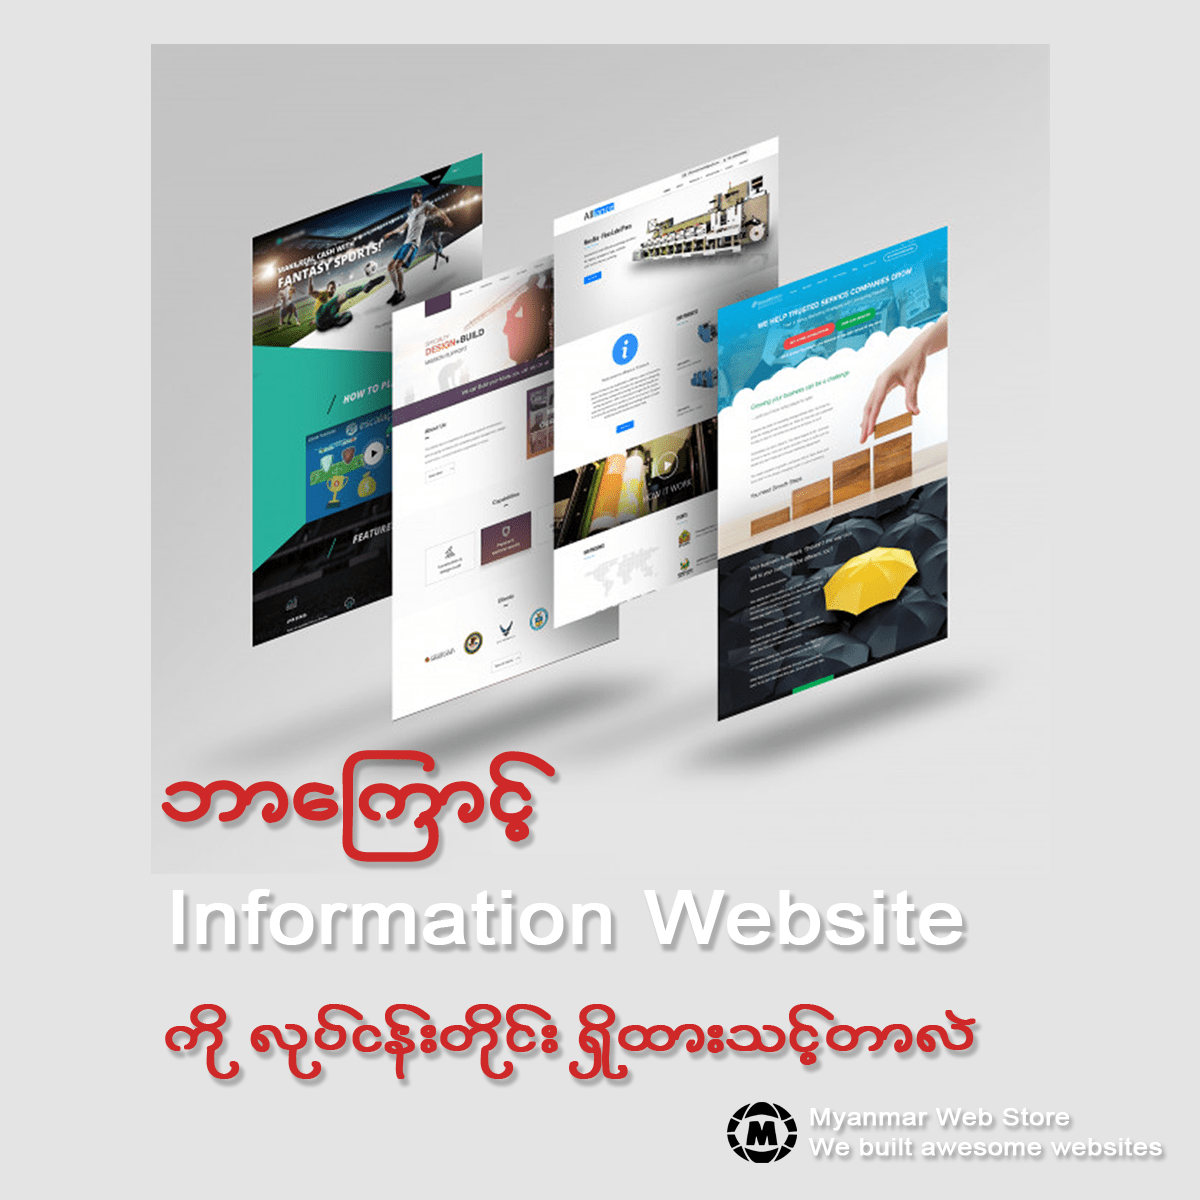 Information website for your business or customer that will inform your services, location to buy a service, etc